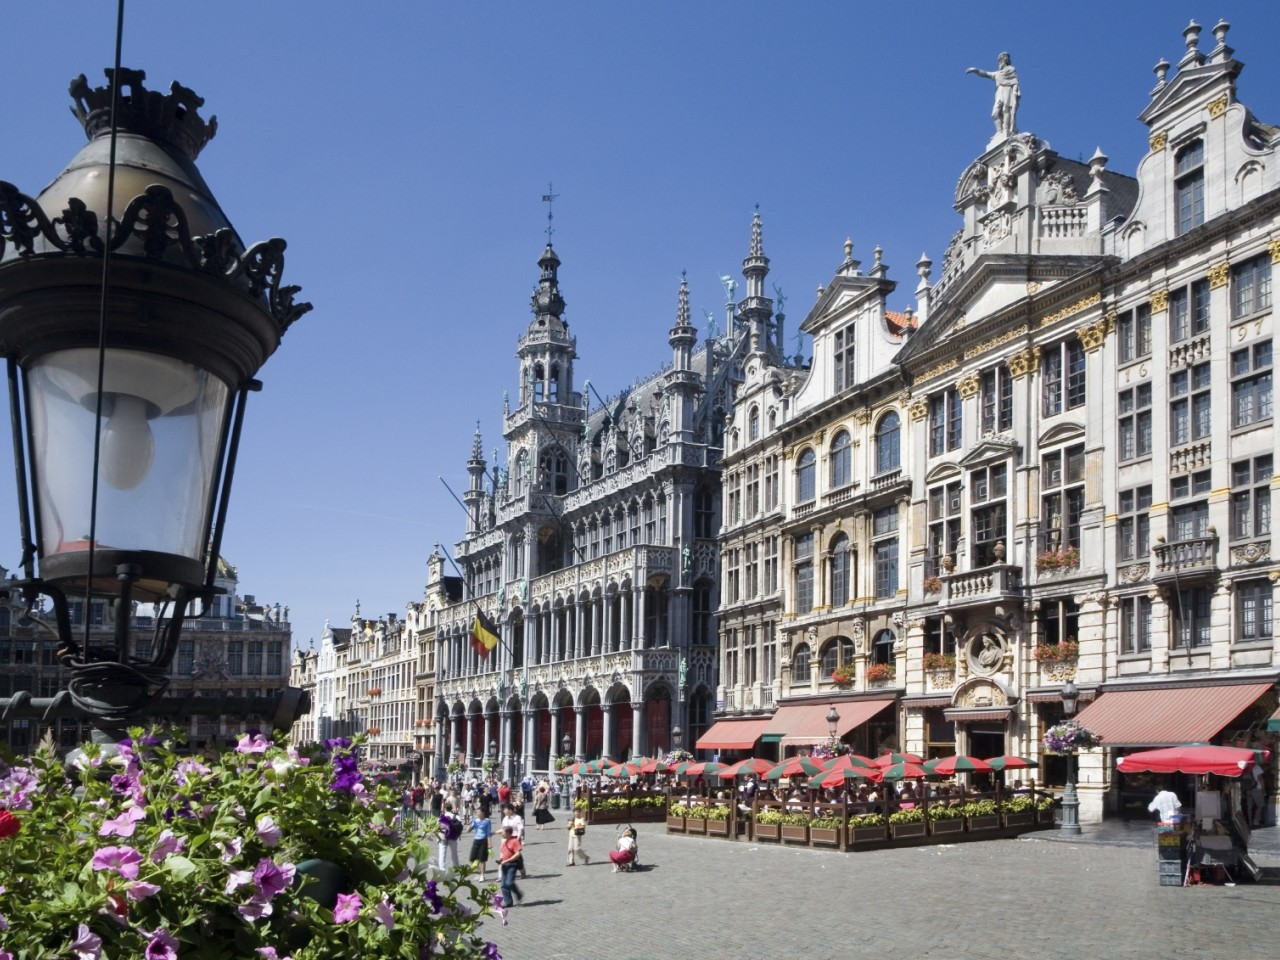 Brussels and Antwerp with André Rieu in Concert: departing 1